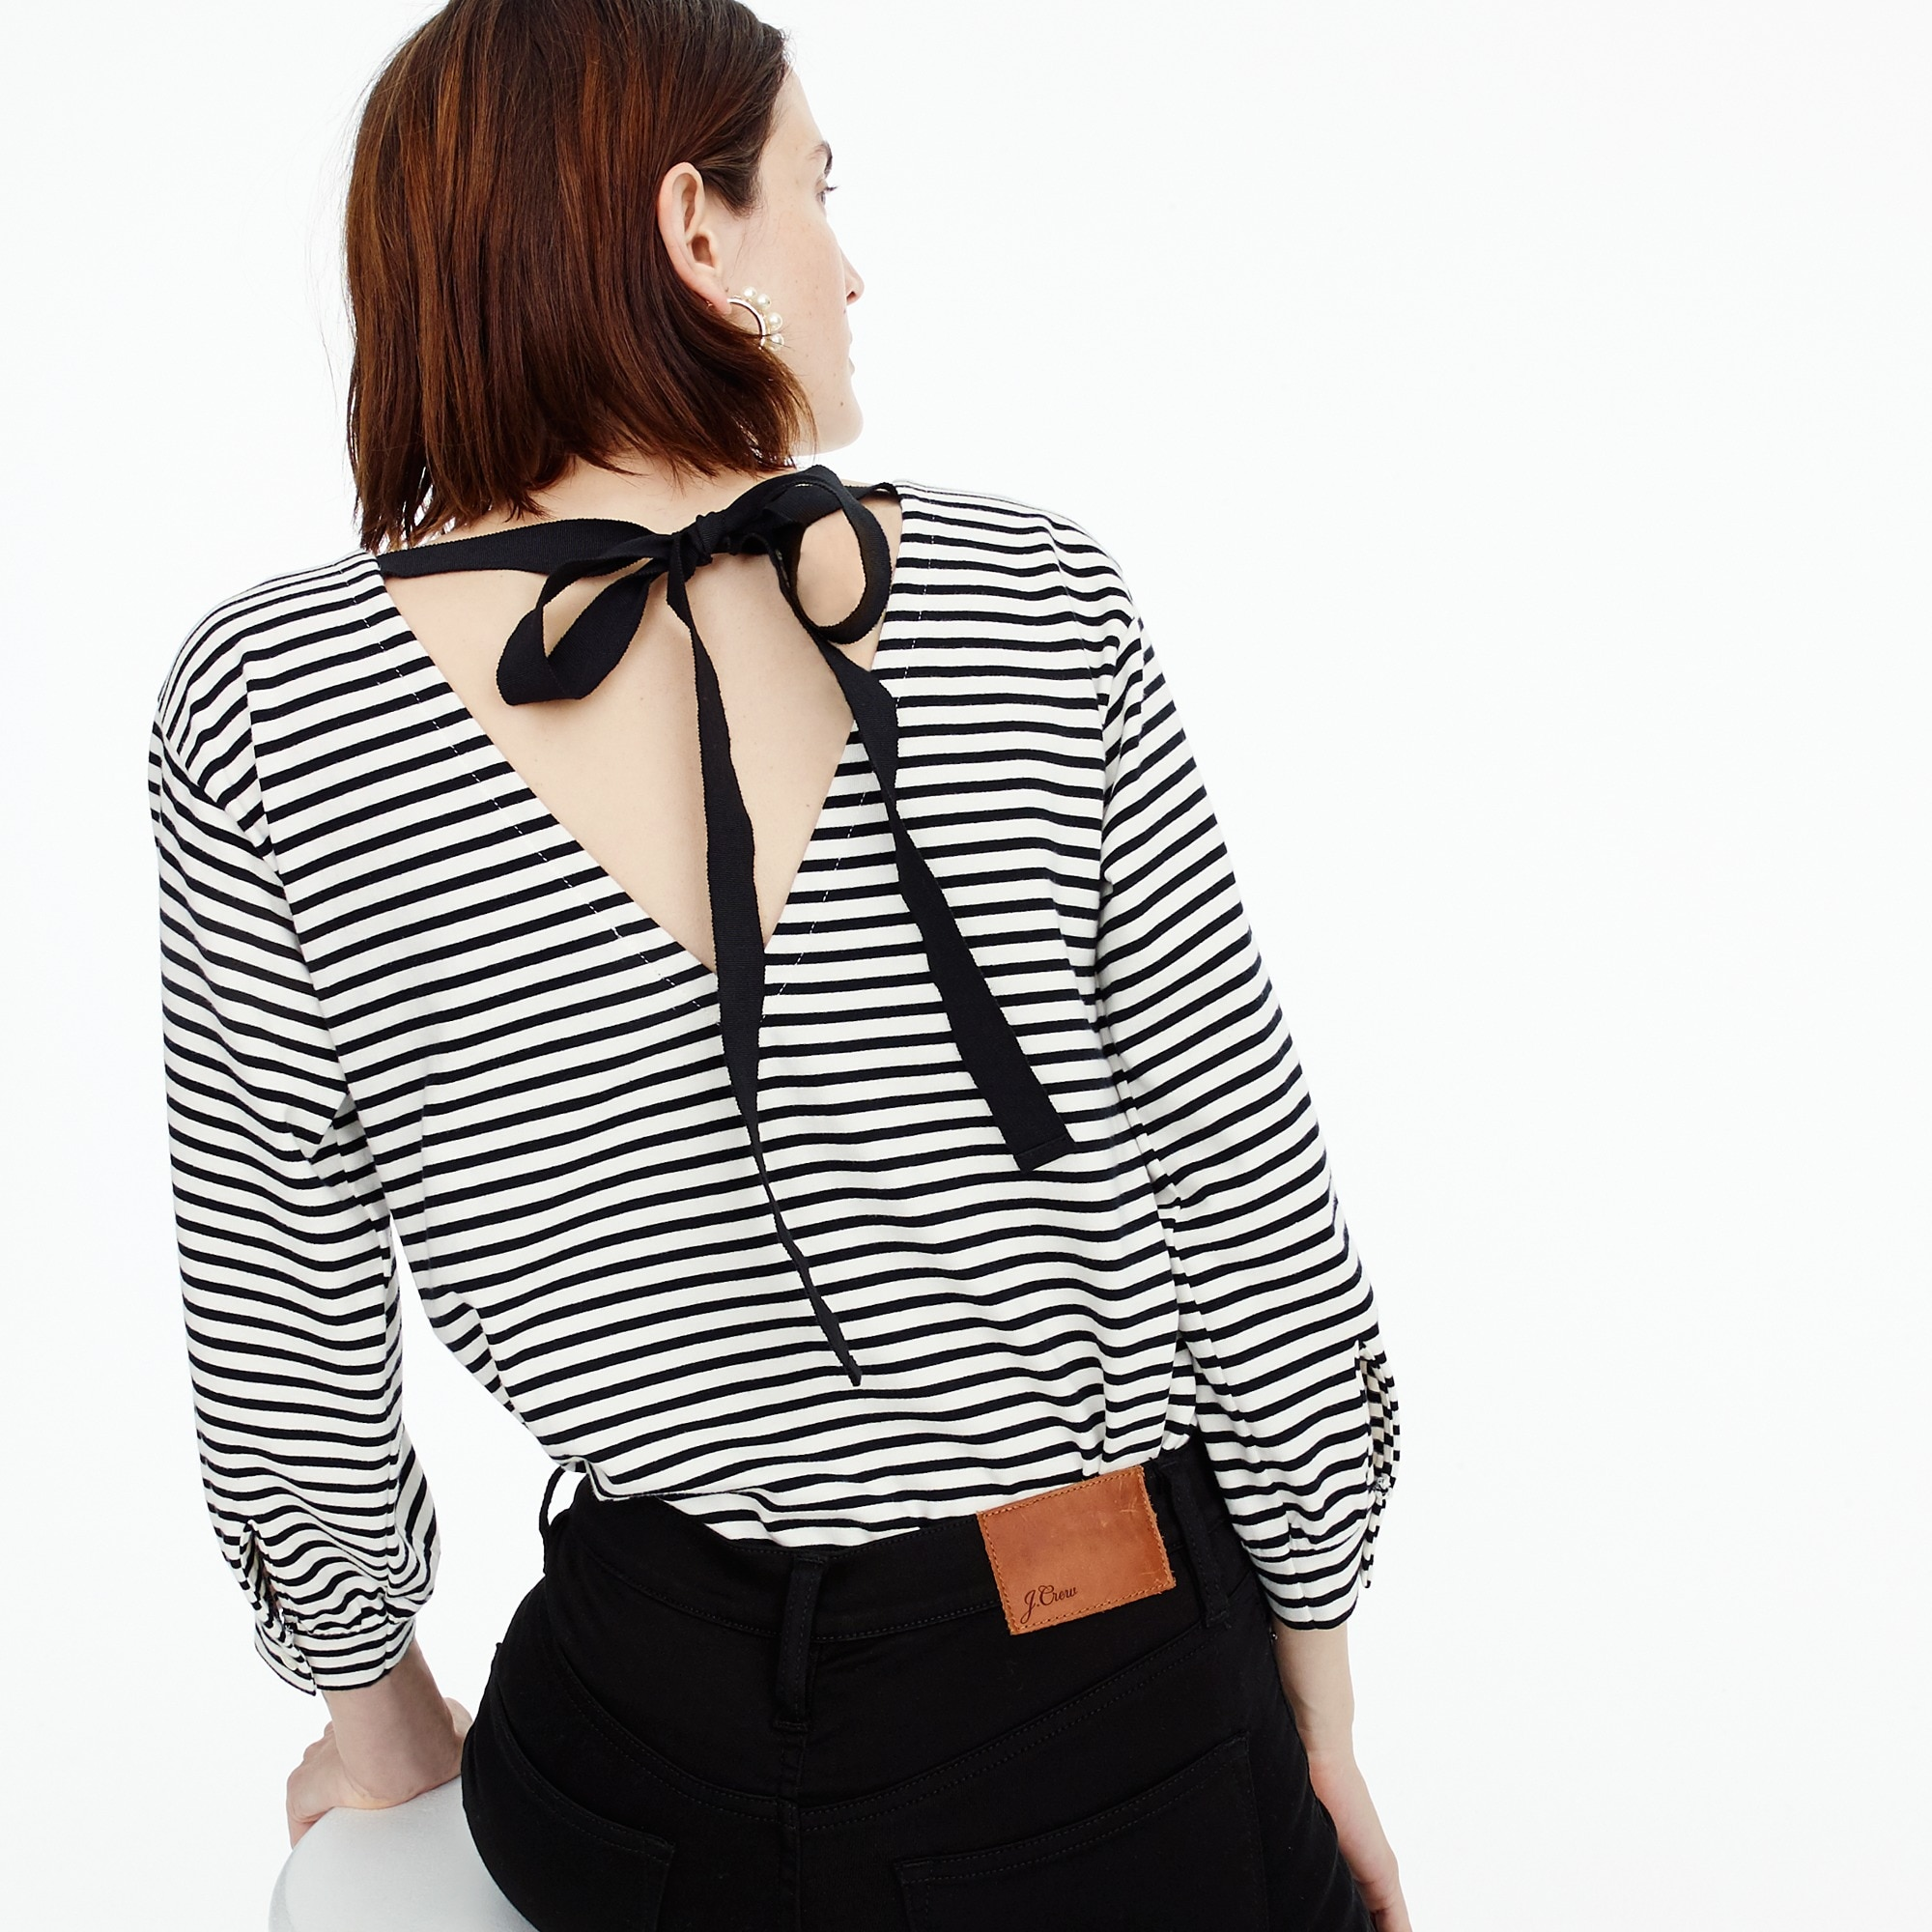 Tie-back top in stripe women t-shirts & tank tops c